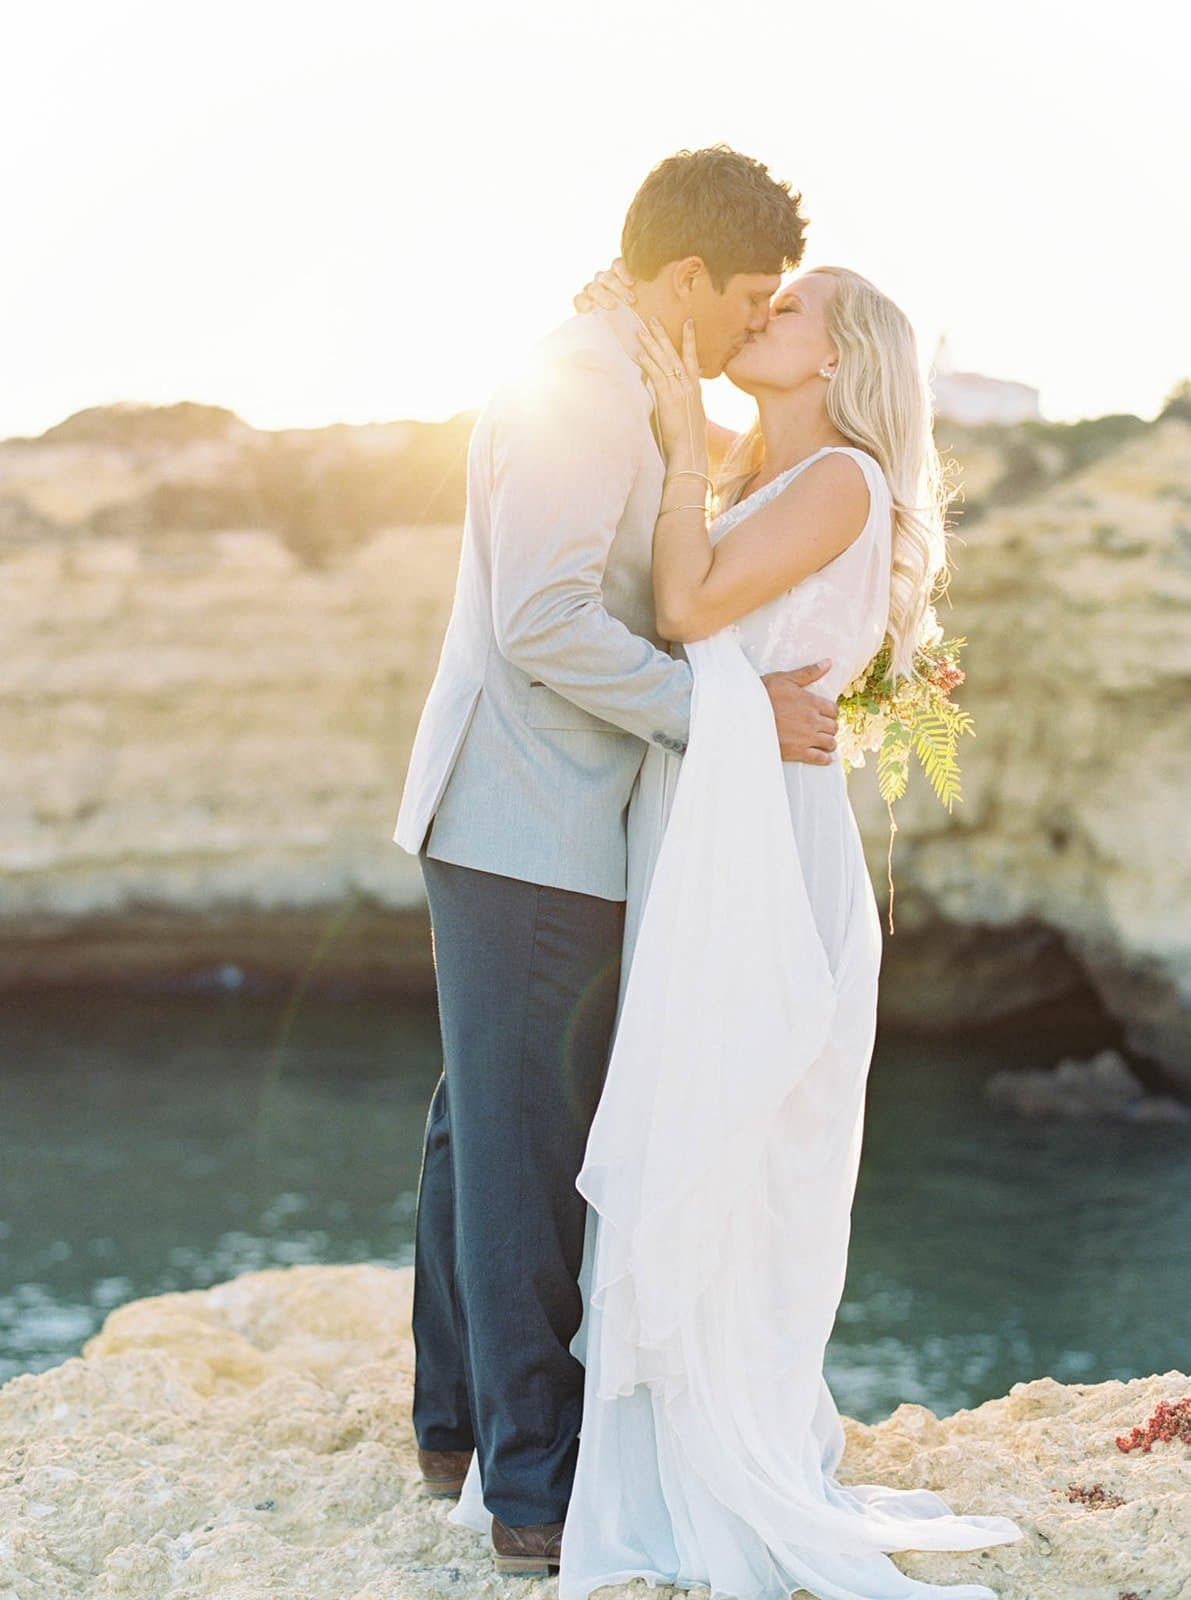 elopement photography inspiration